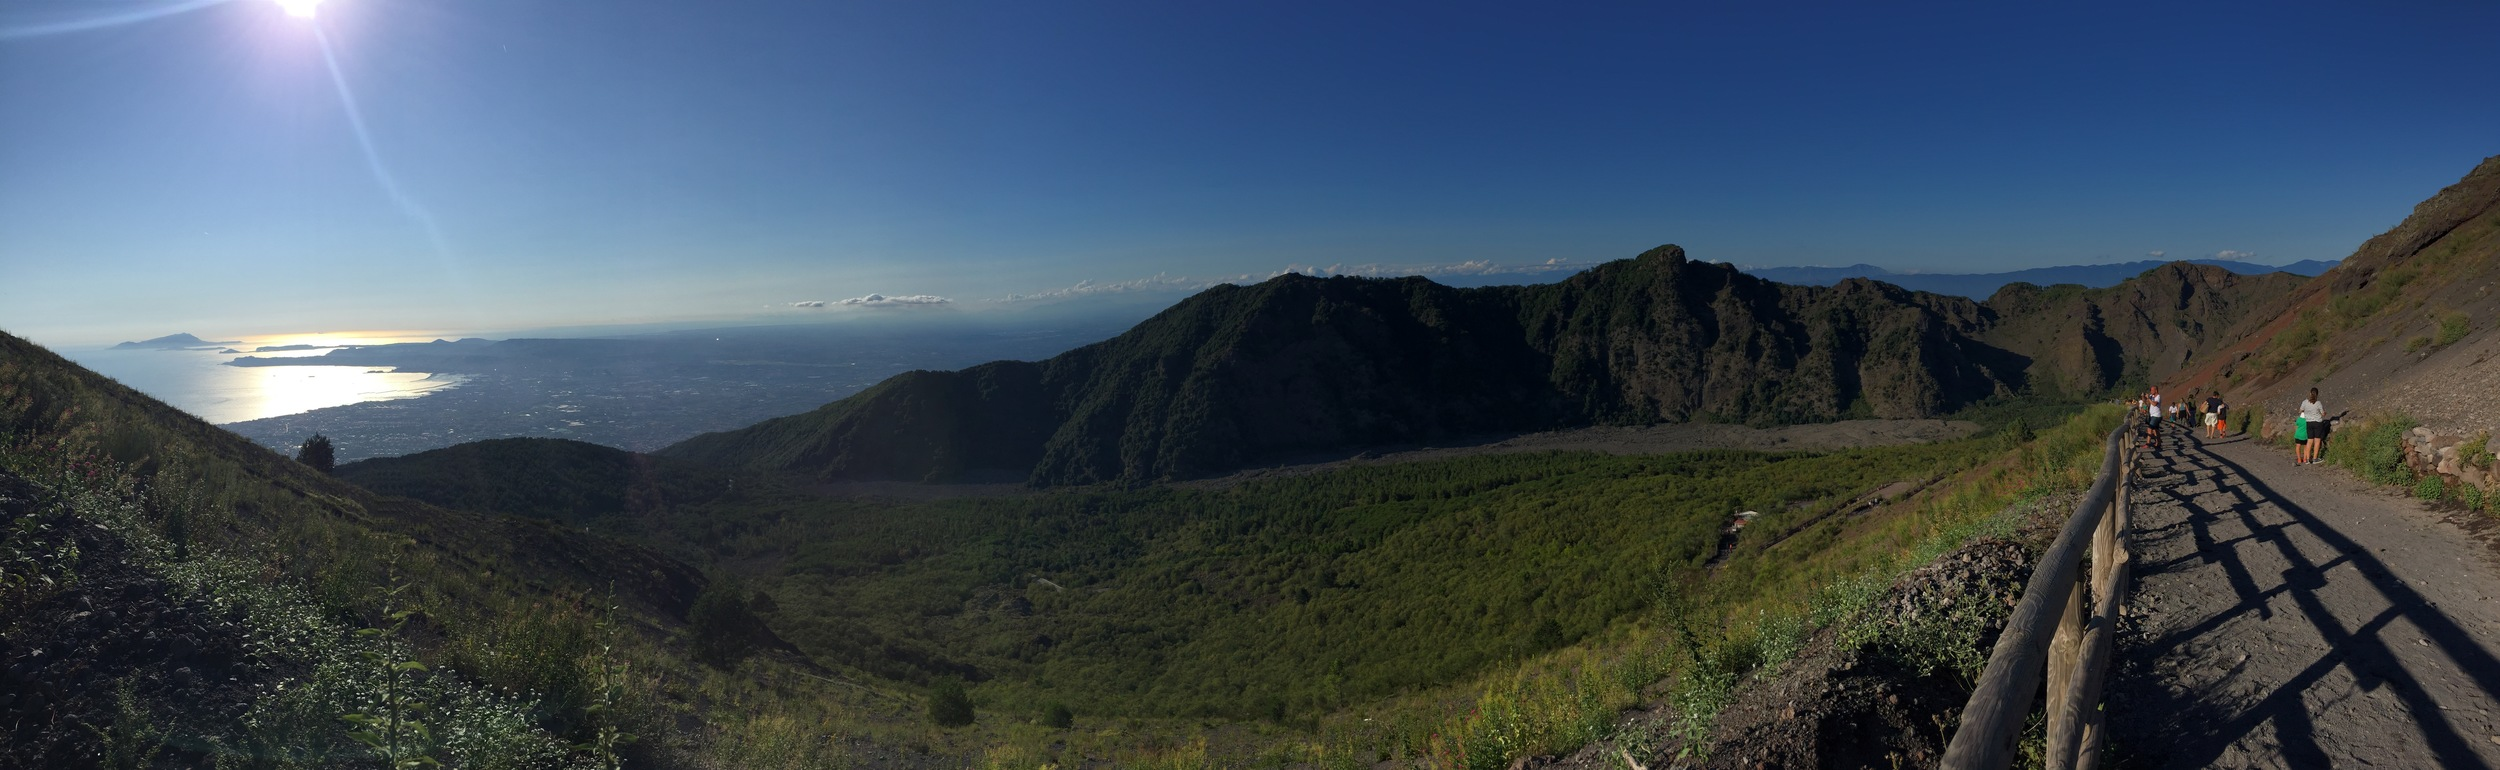 View from the top of Vesuvius